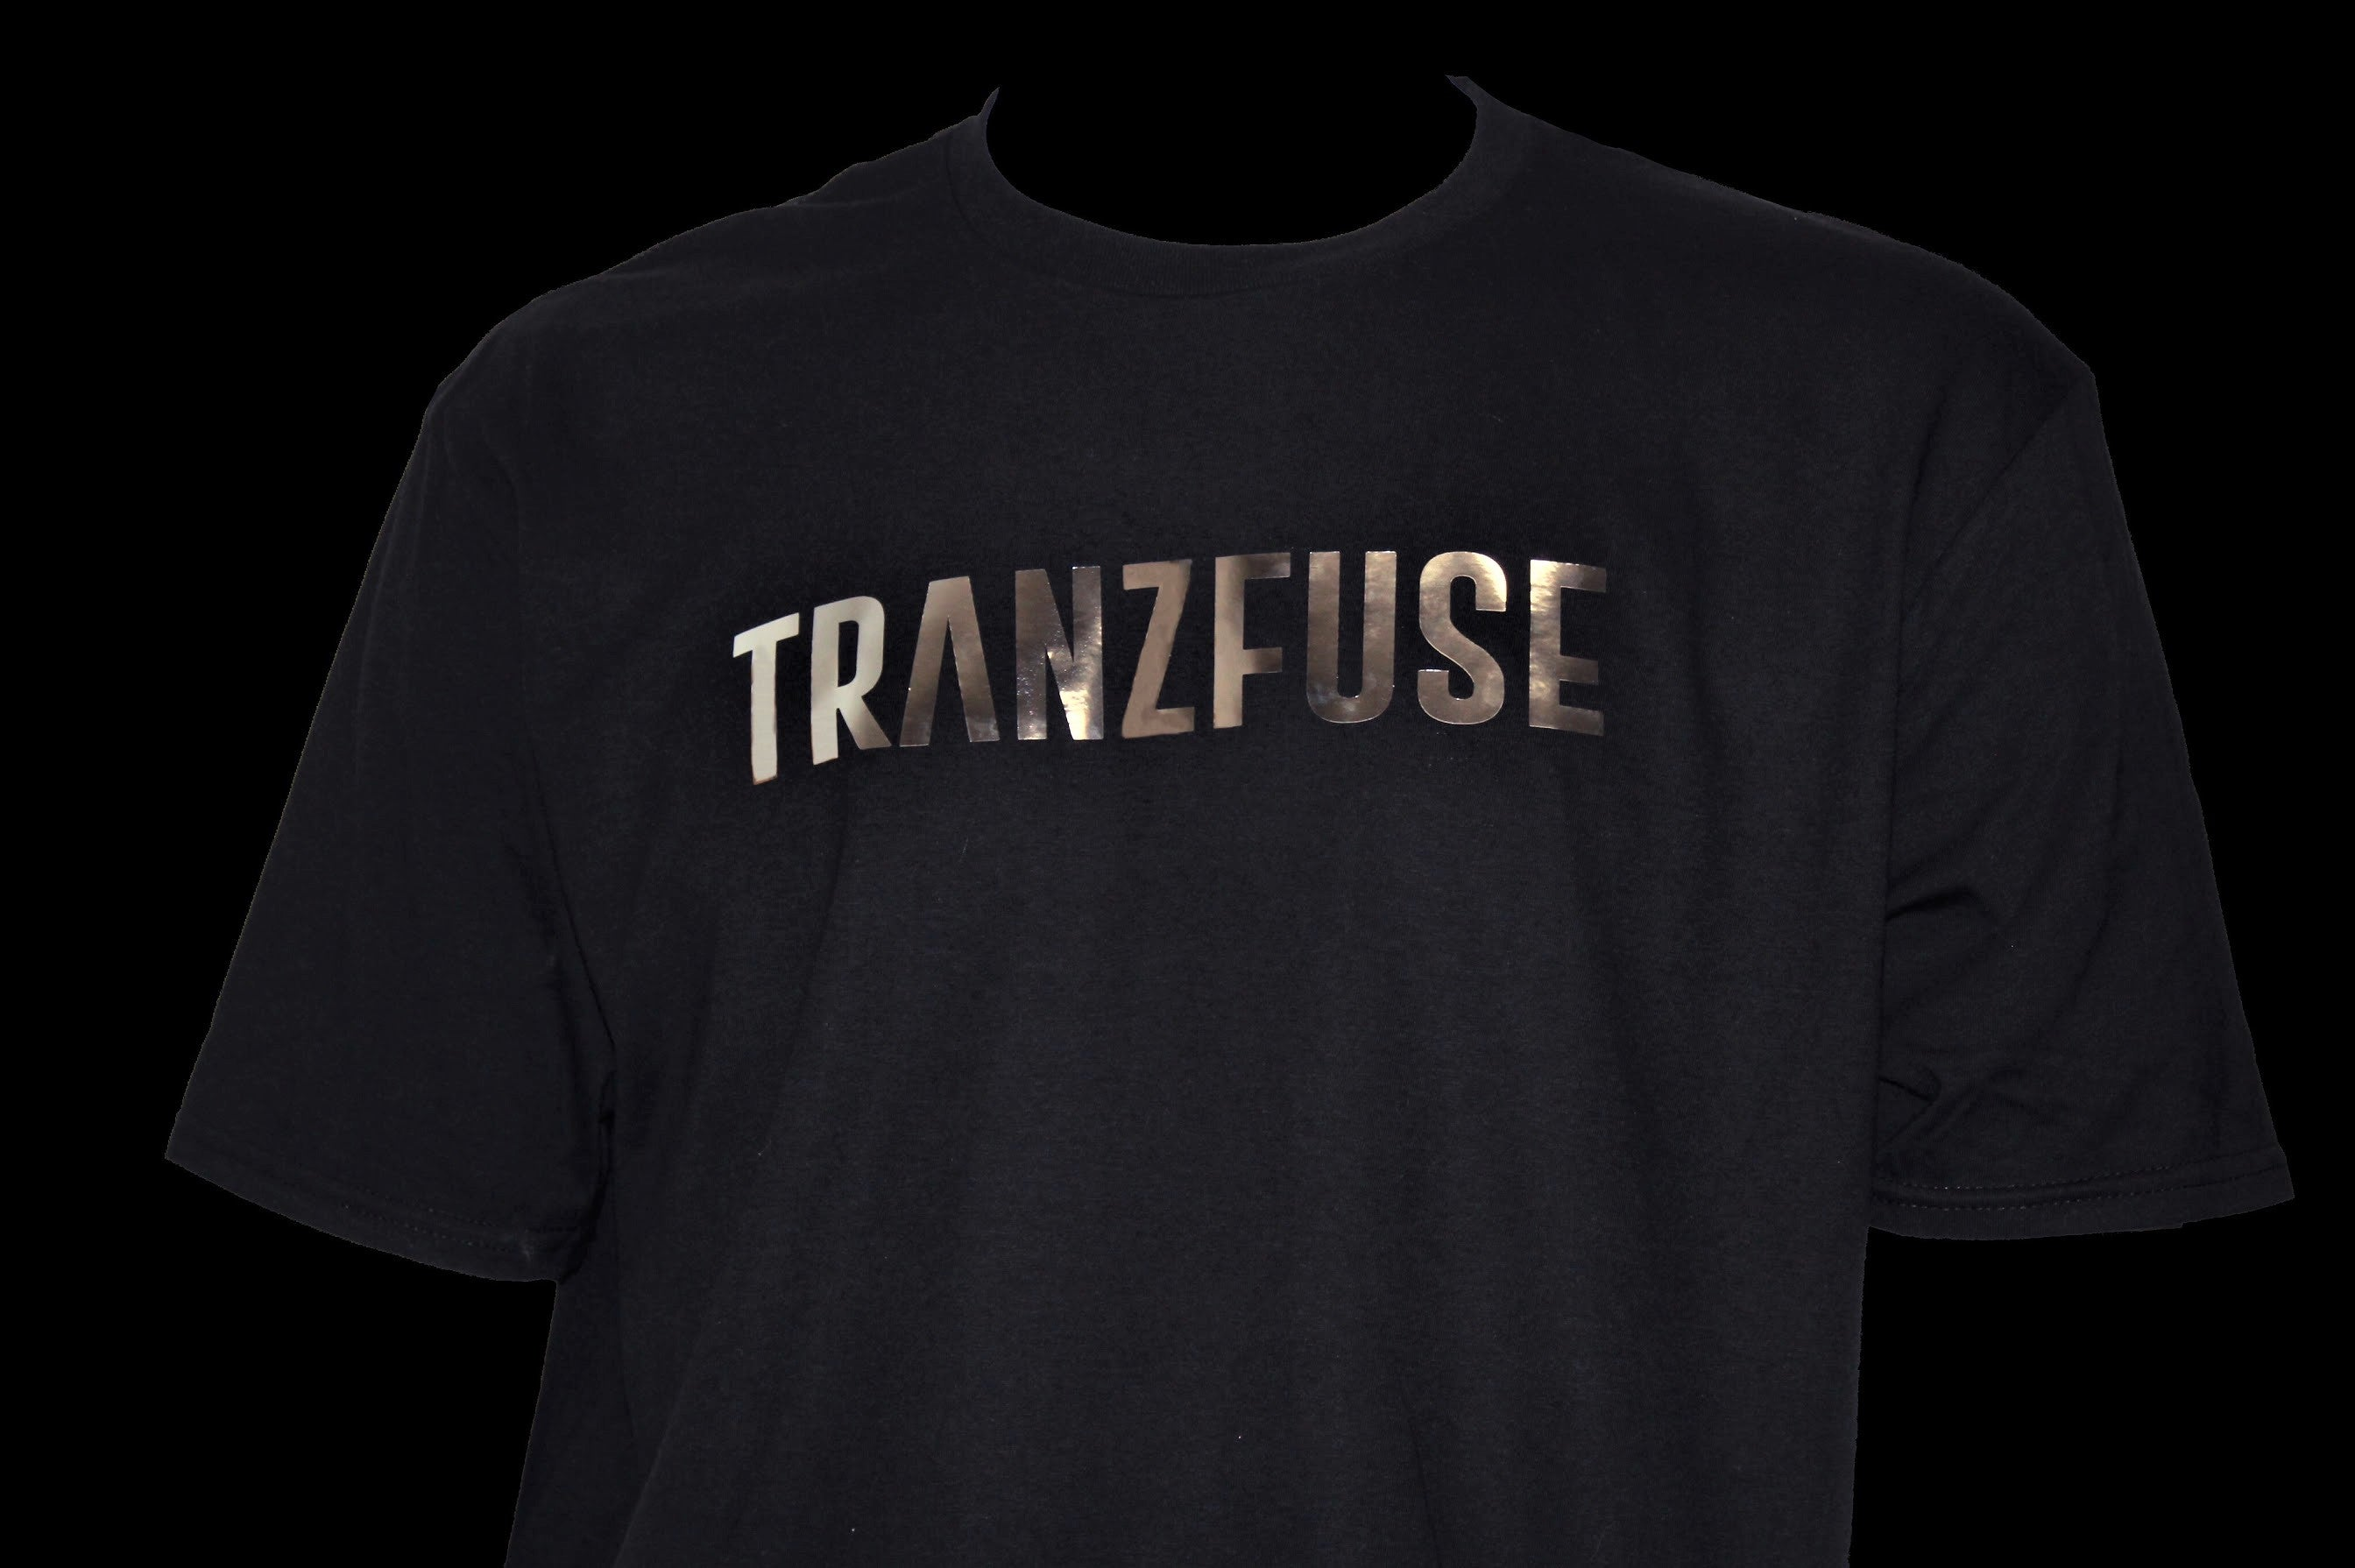 TRANZFUSE T-SHIRT (LIMITED)